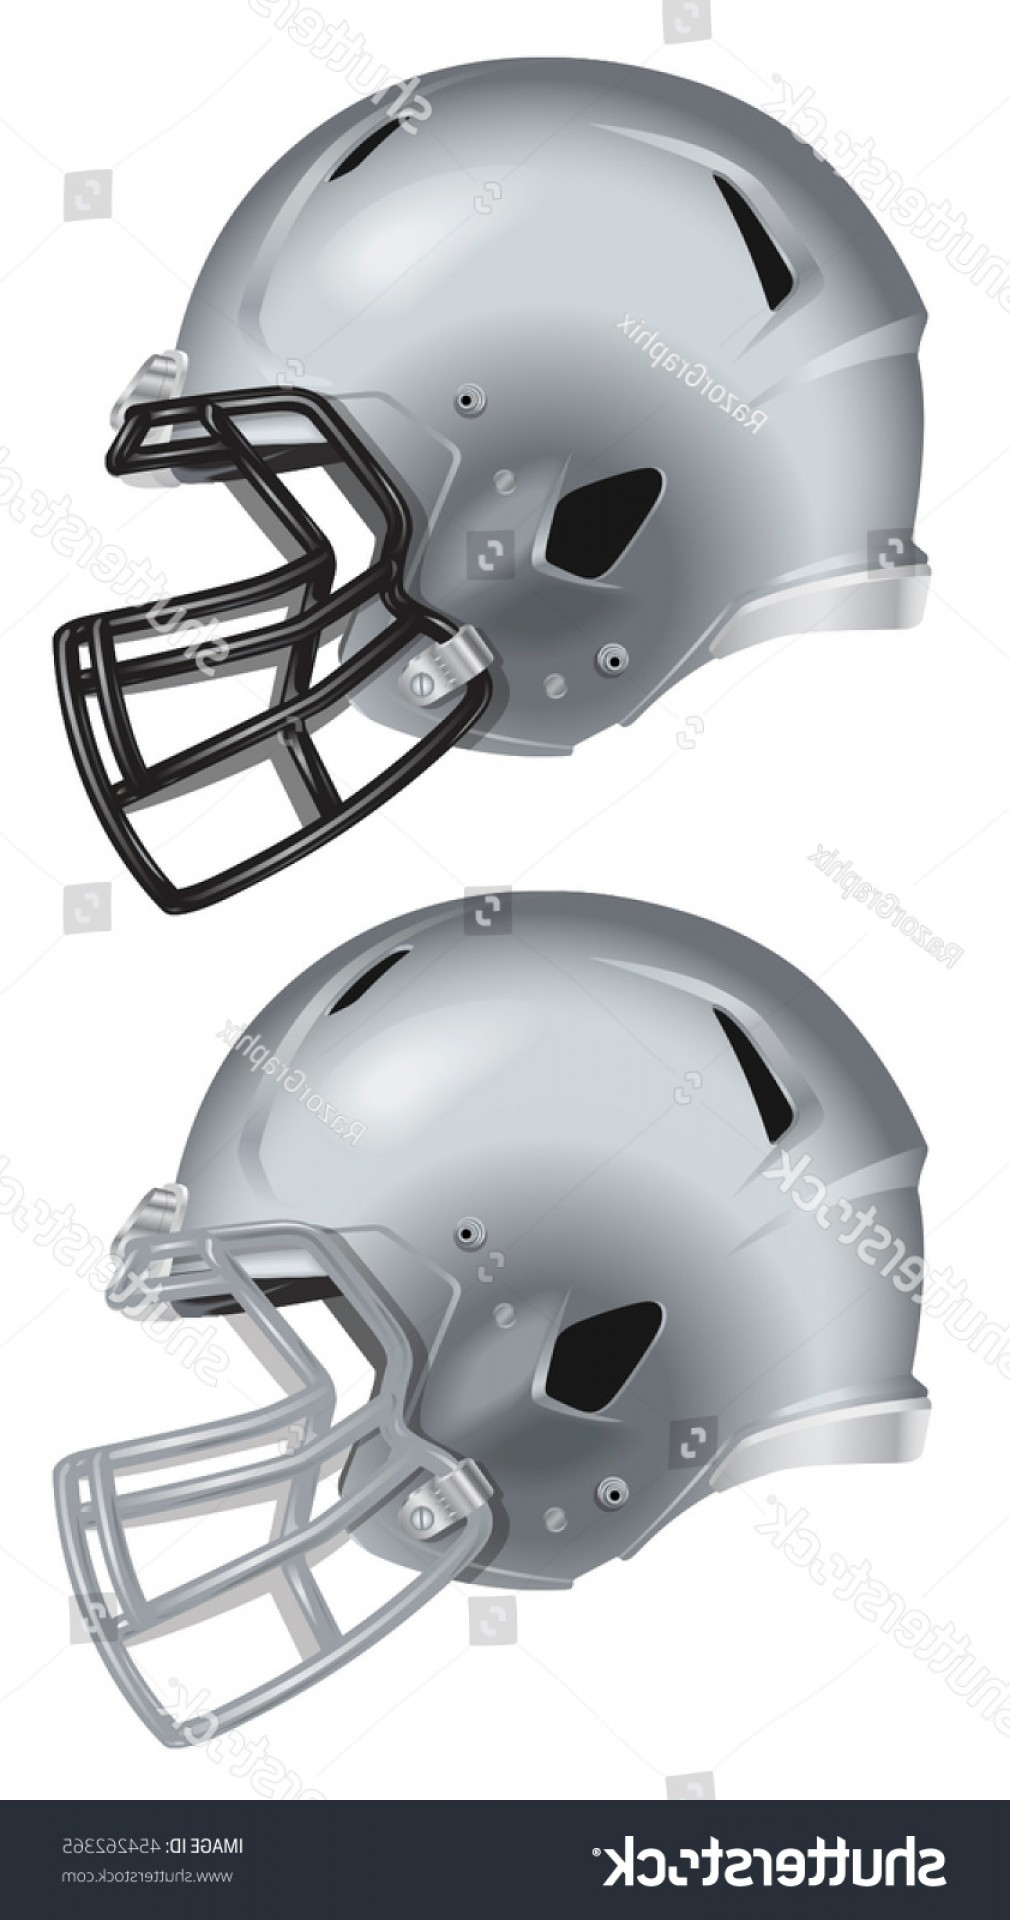 Seahawks Helmet Vector: Side View Silver Football Helmet Vector